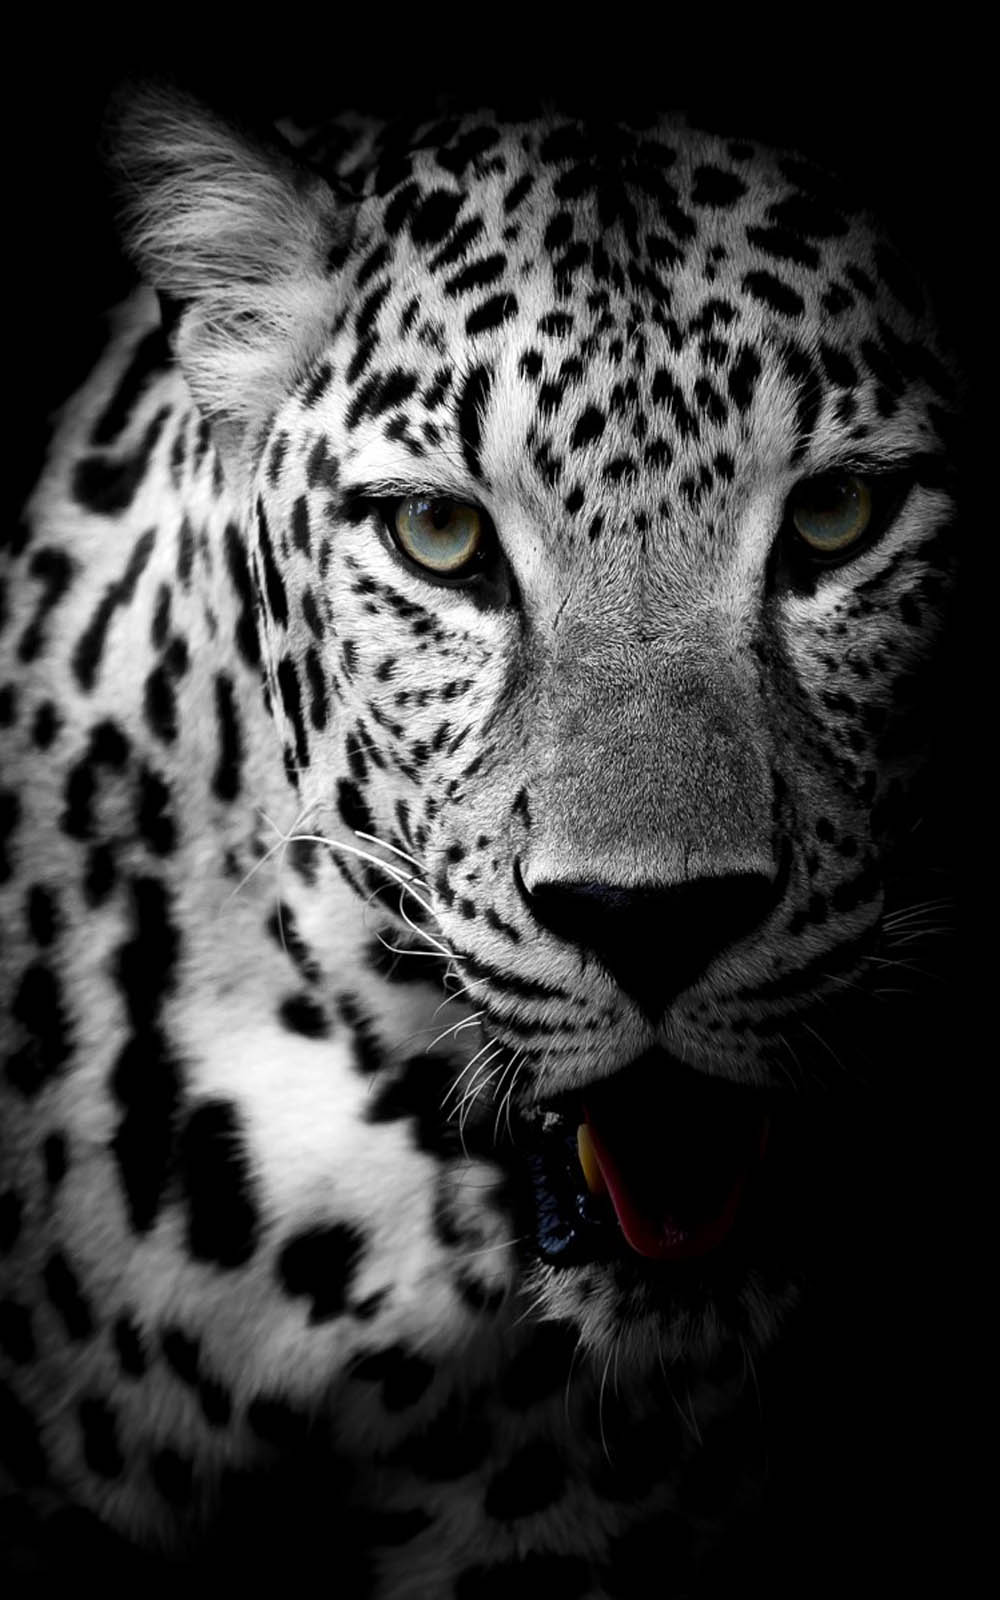 Leopard Black & White Free 4K Ultra HD Mobile Wallpaper